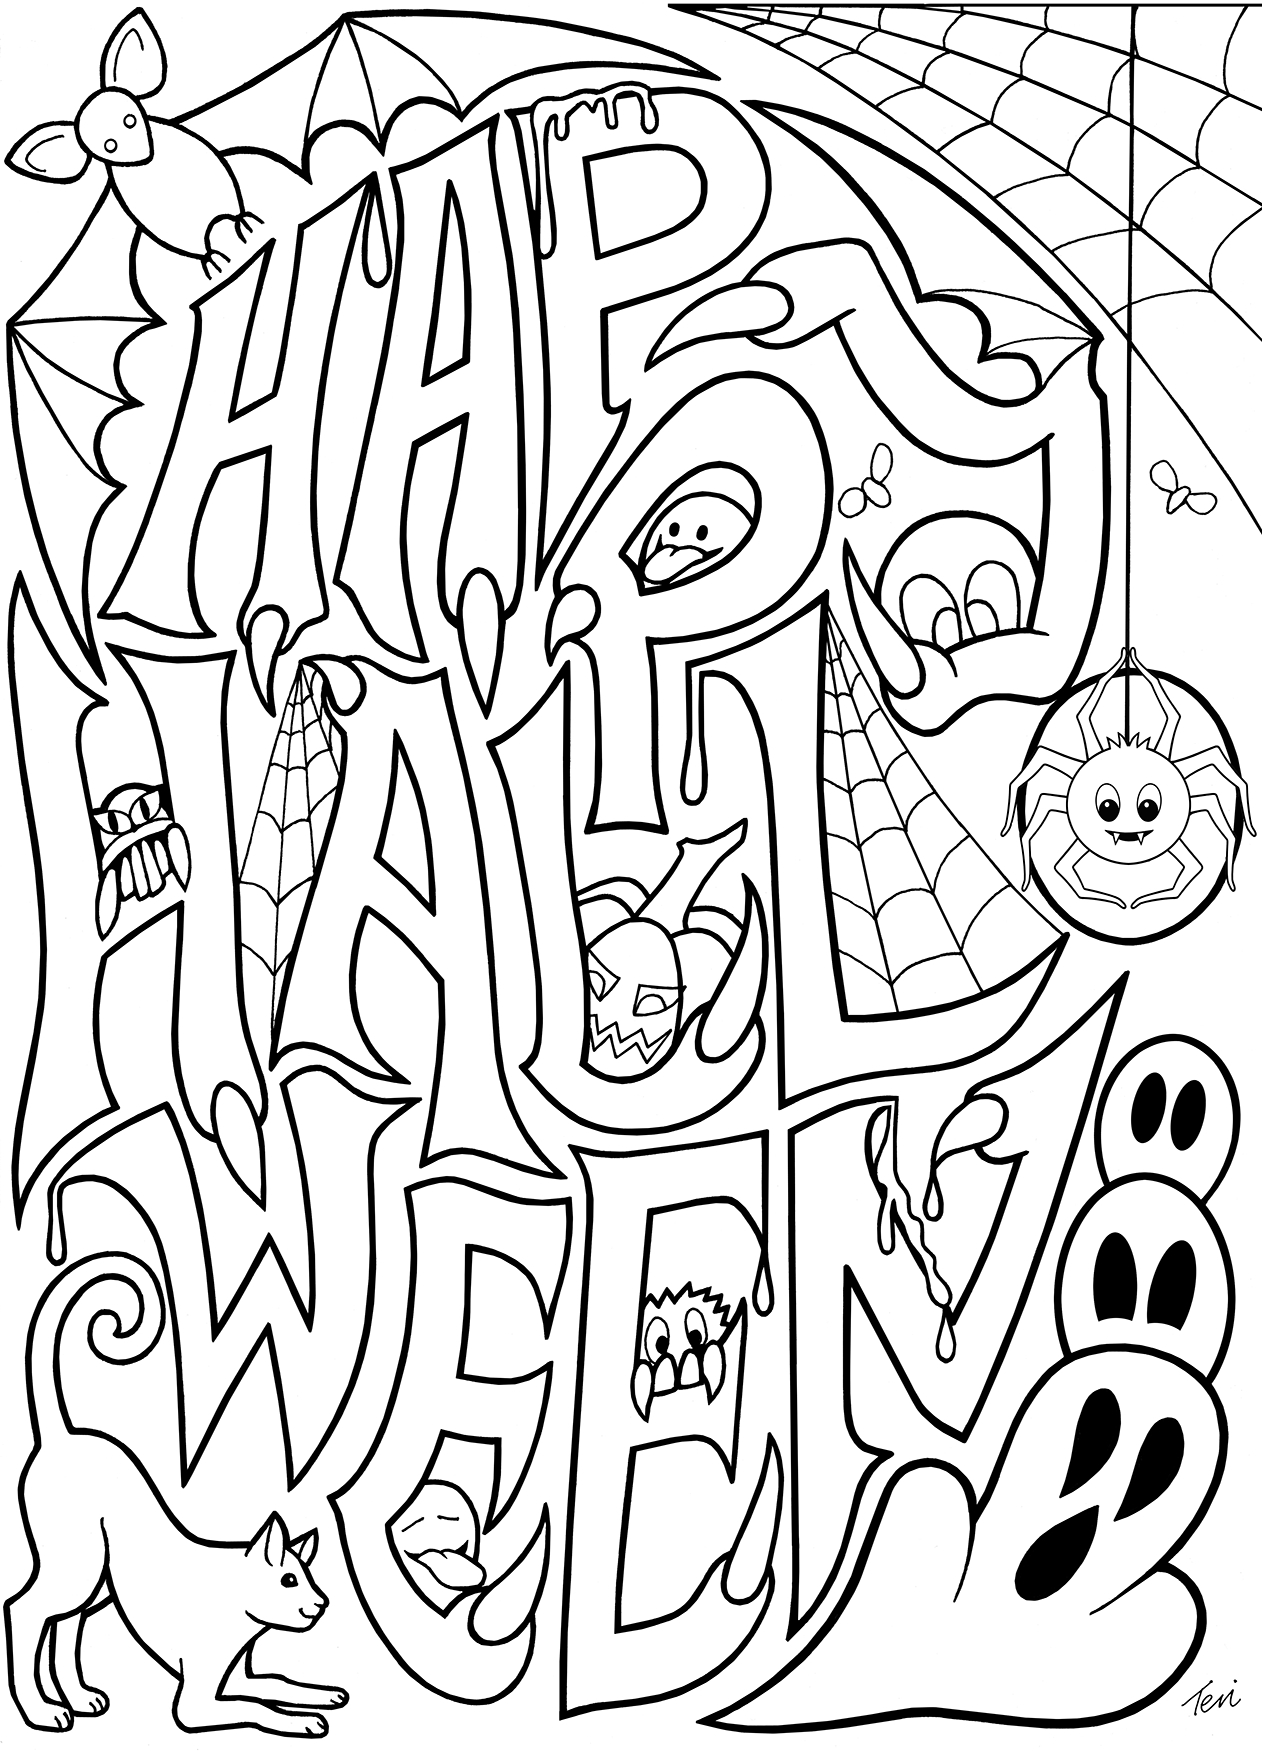 Halloween Skeleton Coloring Pages  Printable 6g - To print for your project